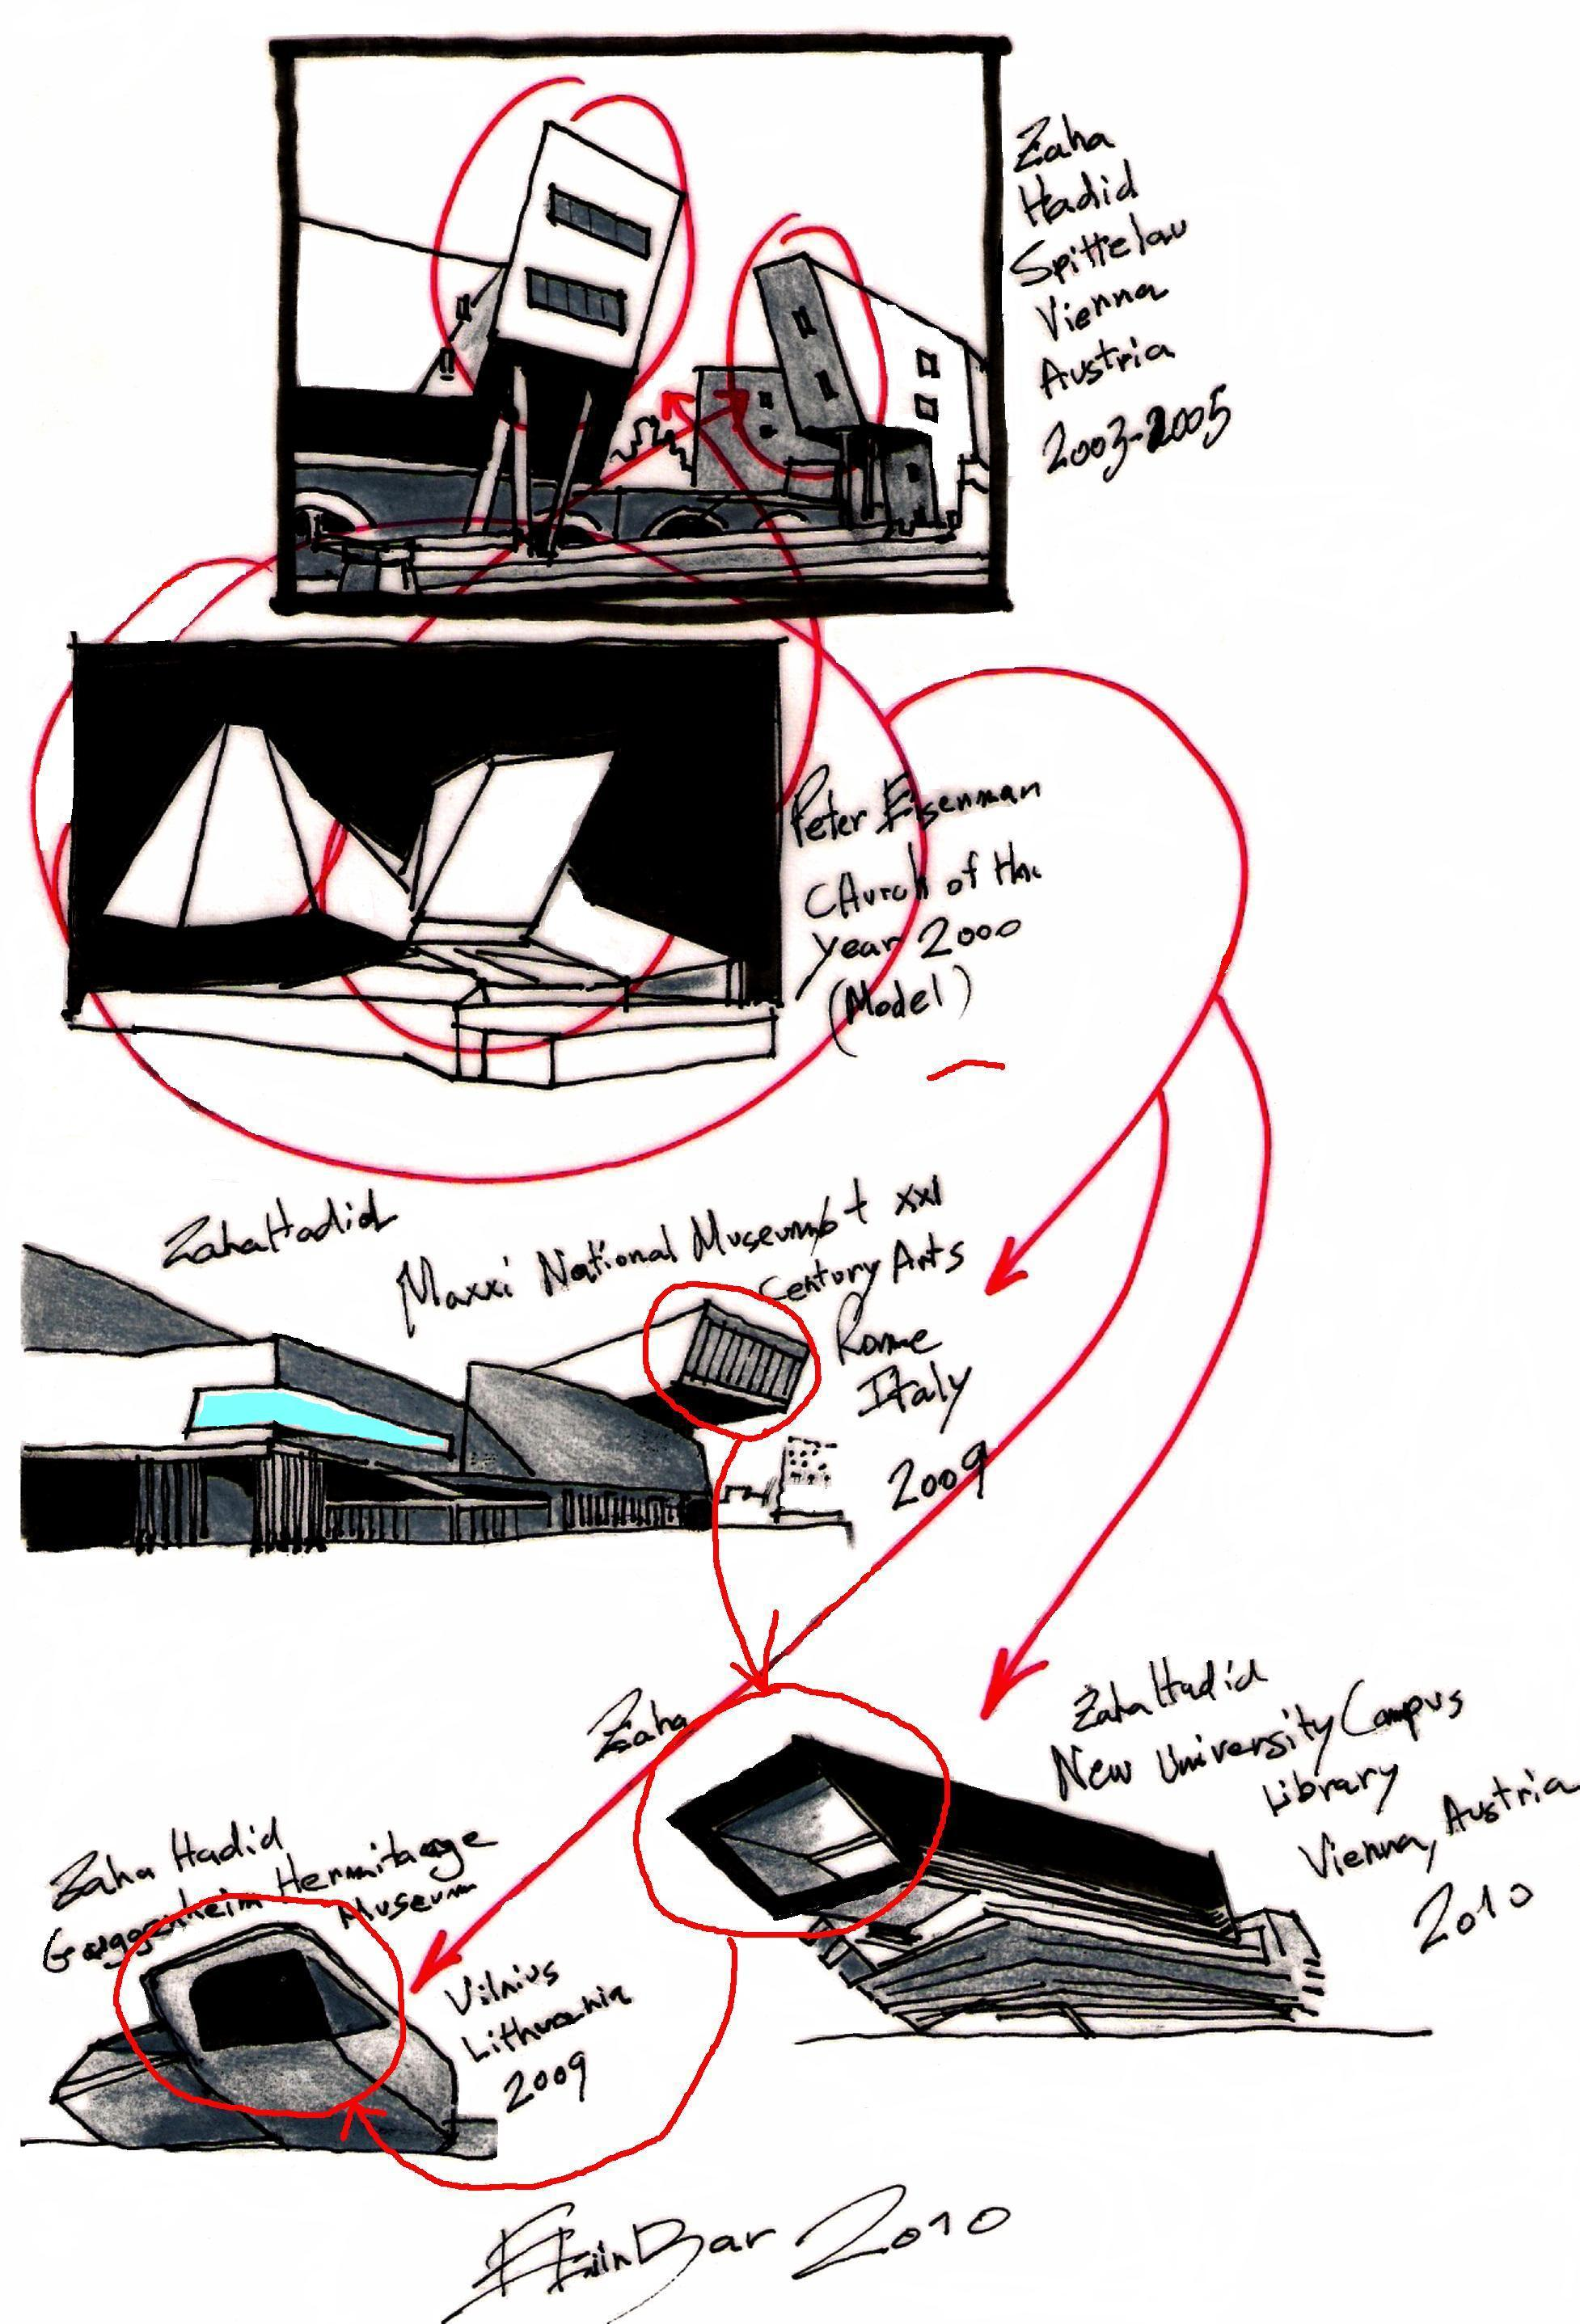 Zaha Hadid Design Concepts And Theory peter eisenman | someone has built it before